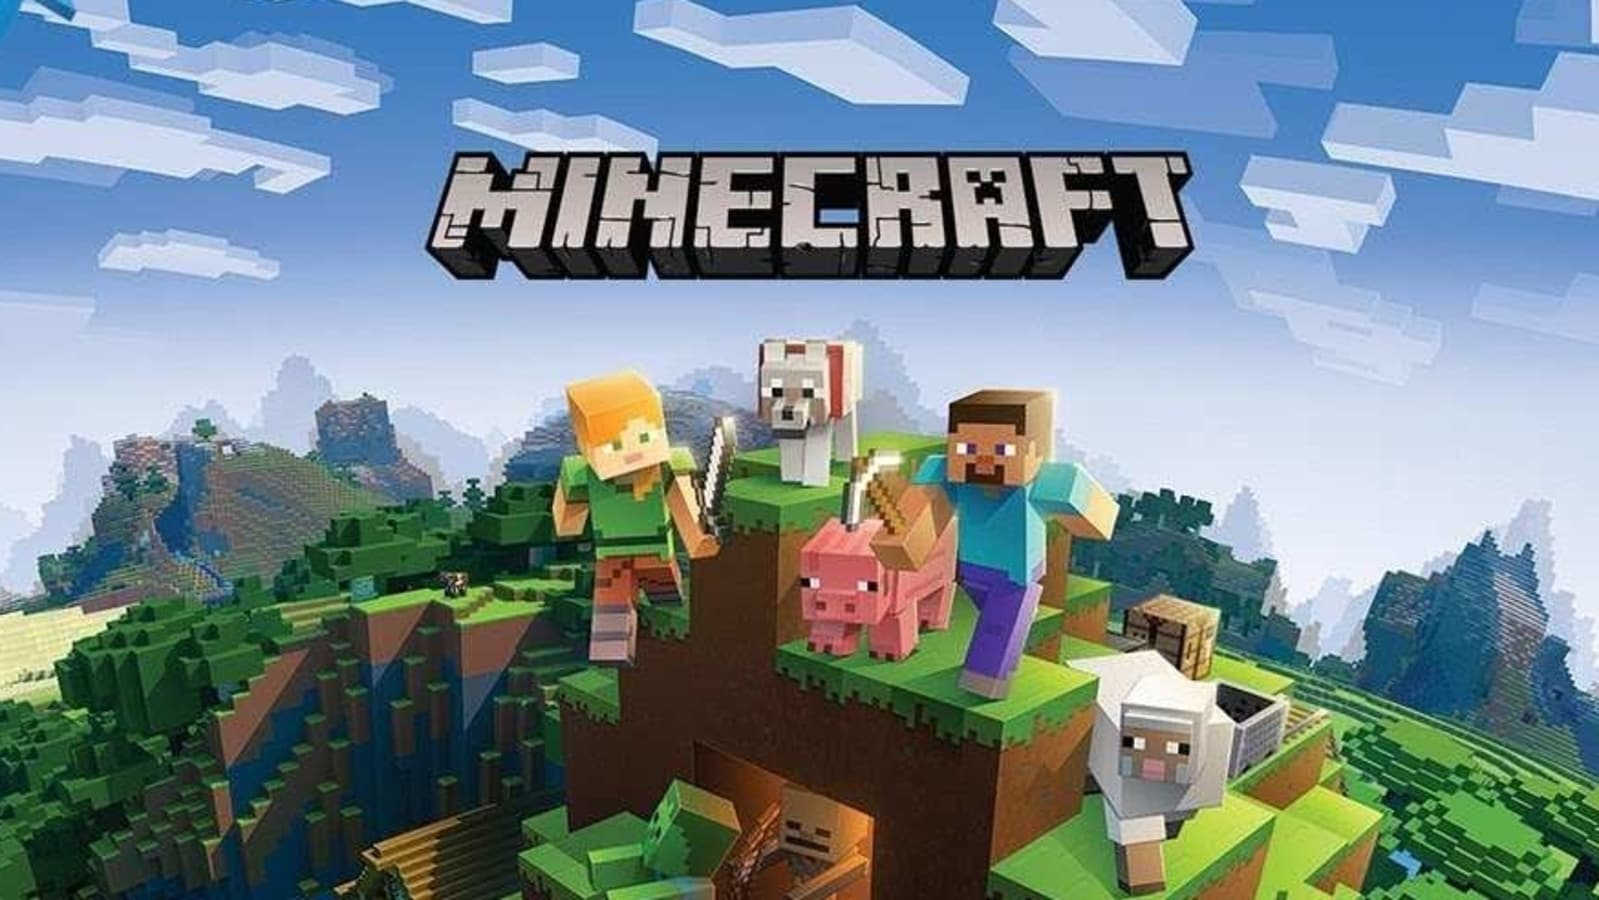 Minecraft Caves and Cliffs are updated: the launch date of all the new features coming into the game – a look